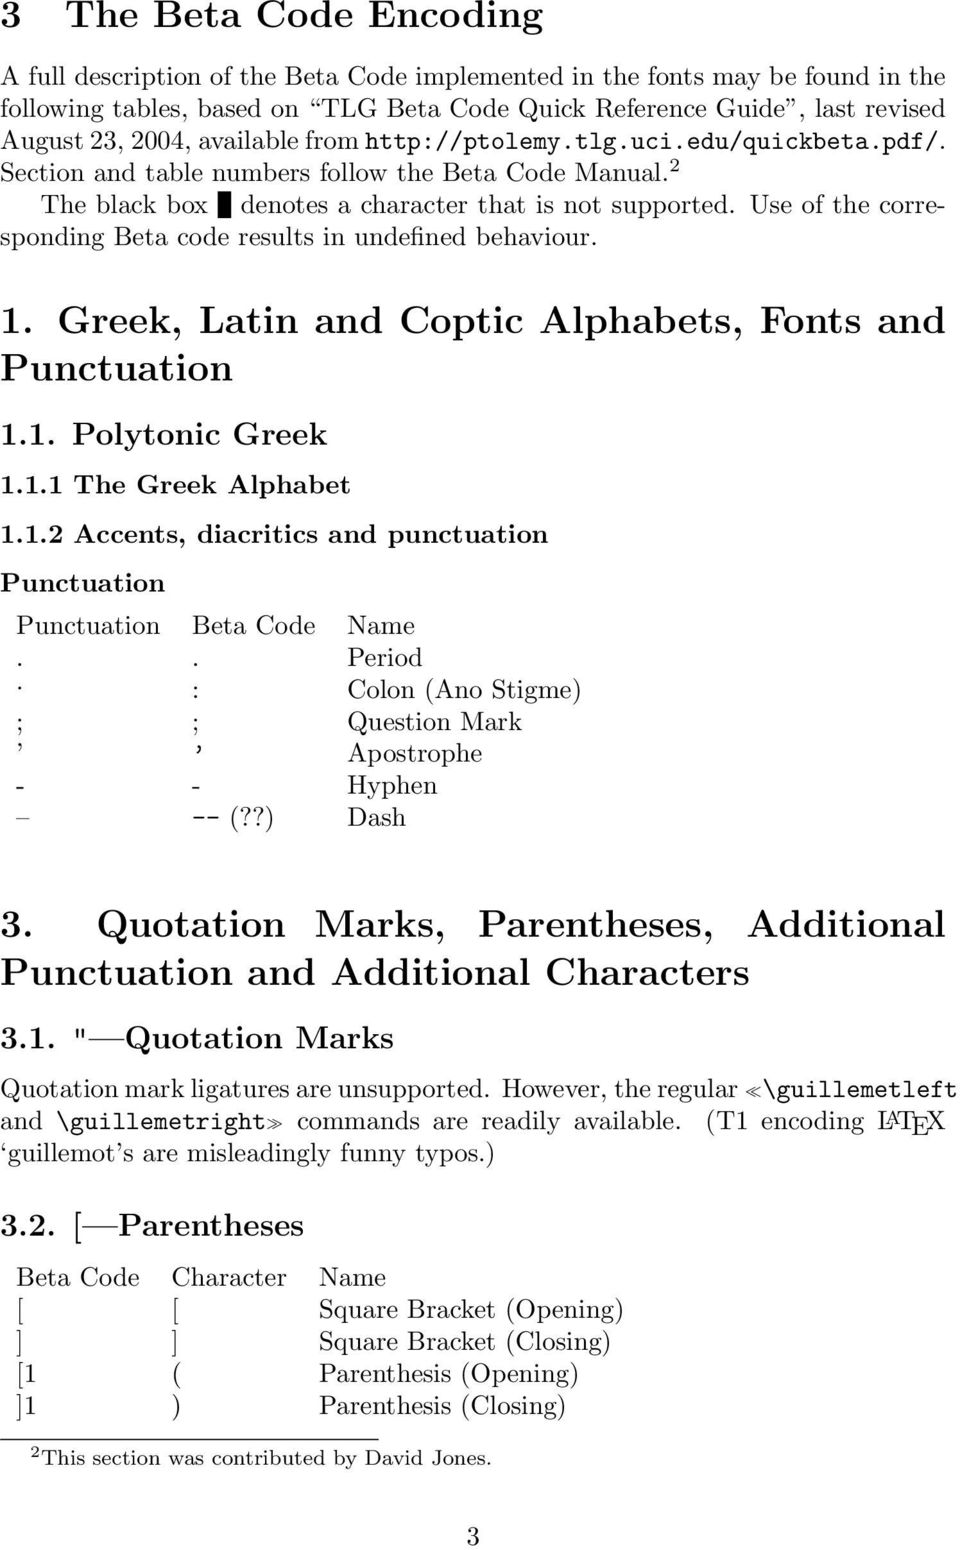 Use of the corresponding Beta code results in undefined behaviour. 1. Greek, Latin and Coptic Alphabets, Fonts and Punctuation 1.1. Polytonic Greek 1.1.1 The Greek Alphabet 1.1.2 Accents, diacritics and punctuation Punctuation Punctuation Beta Code Name.